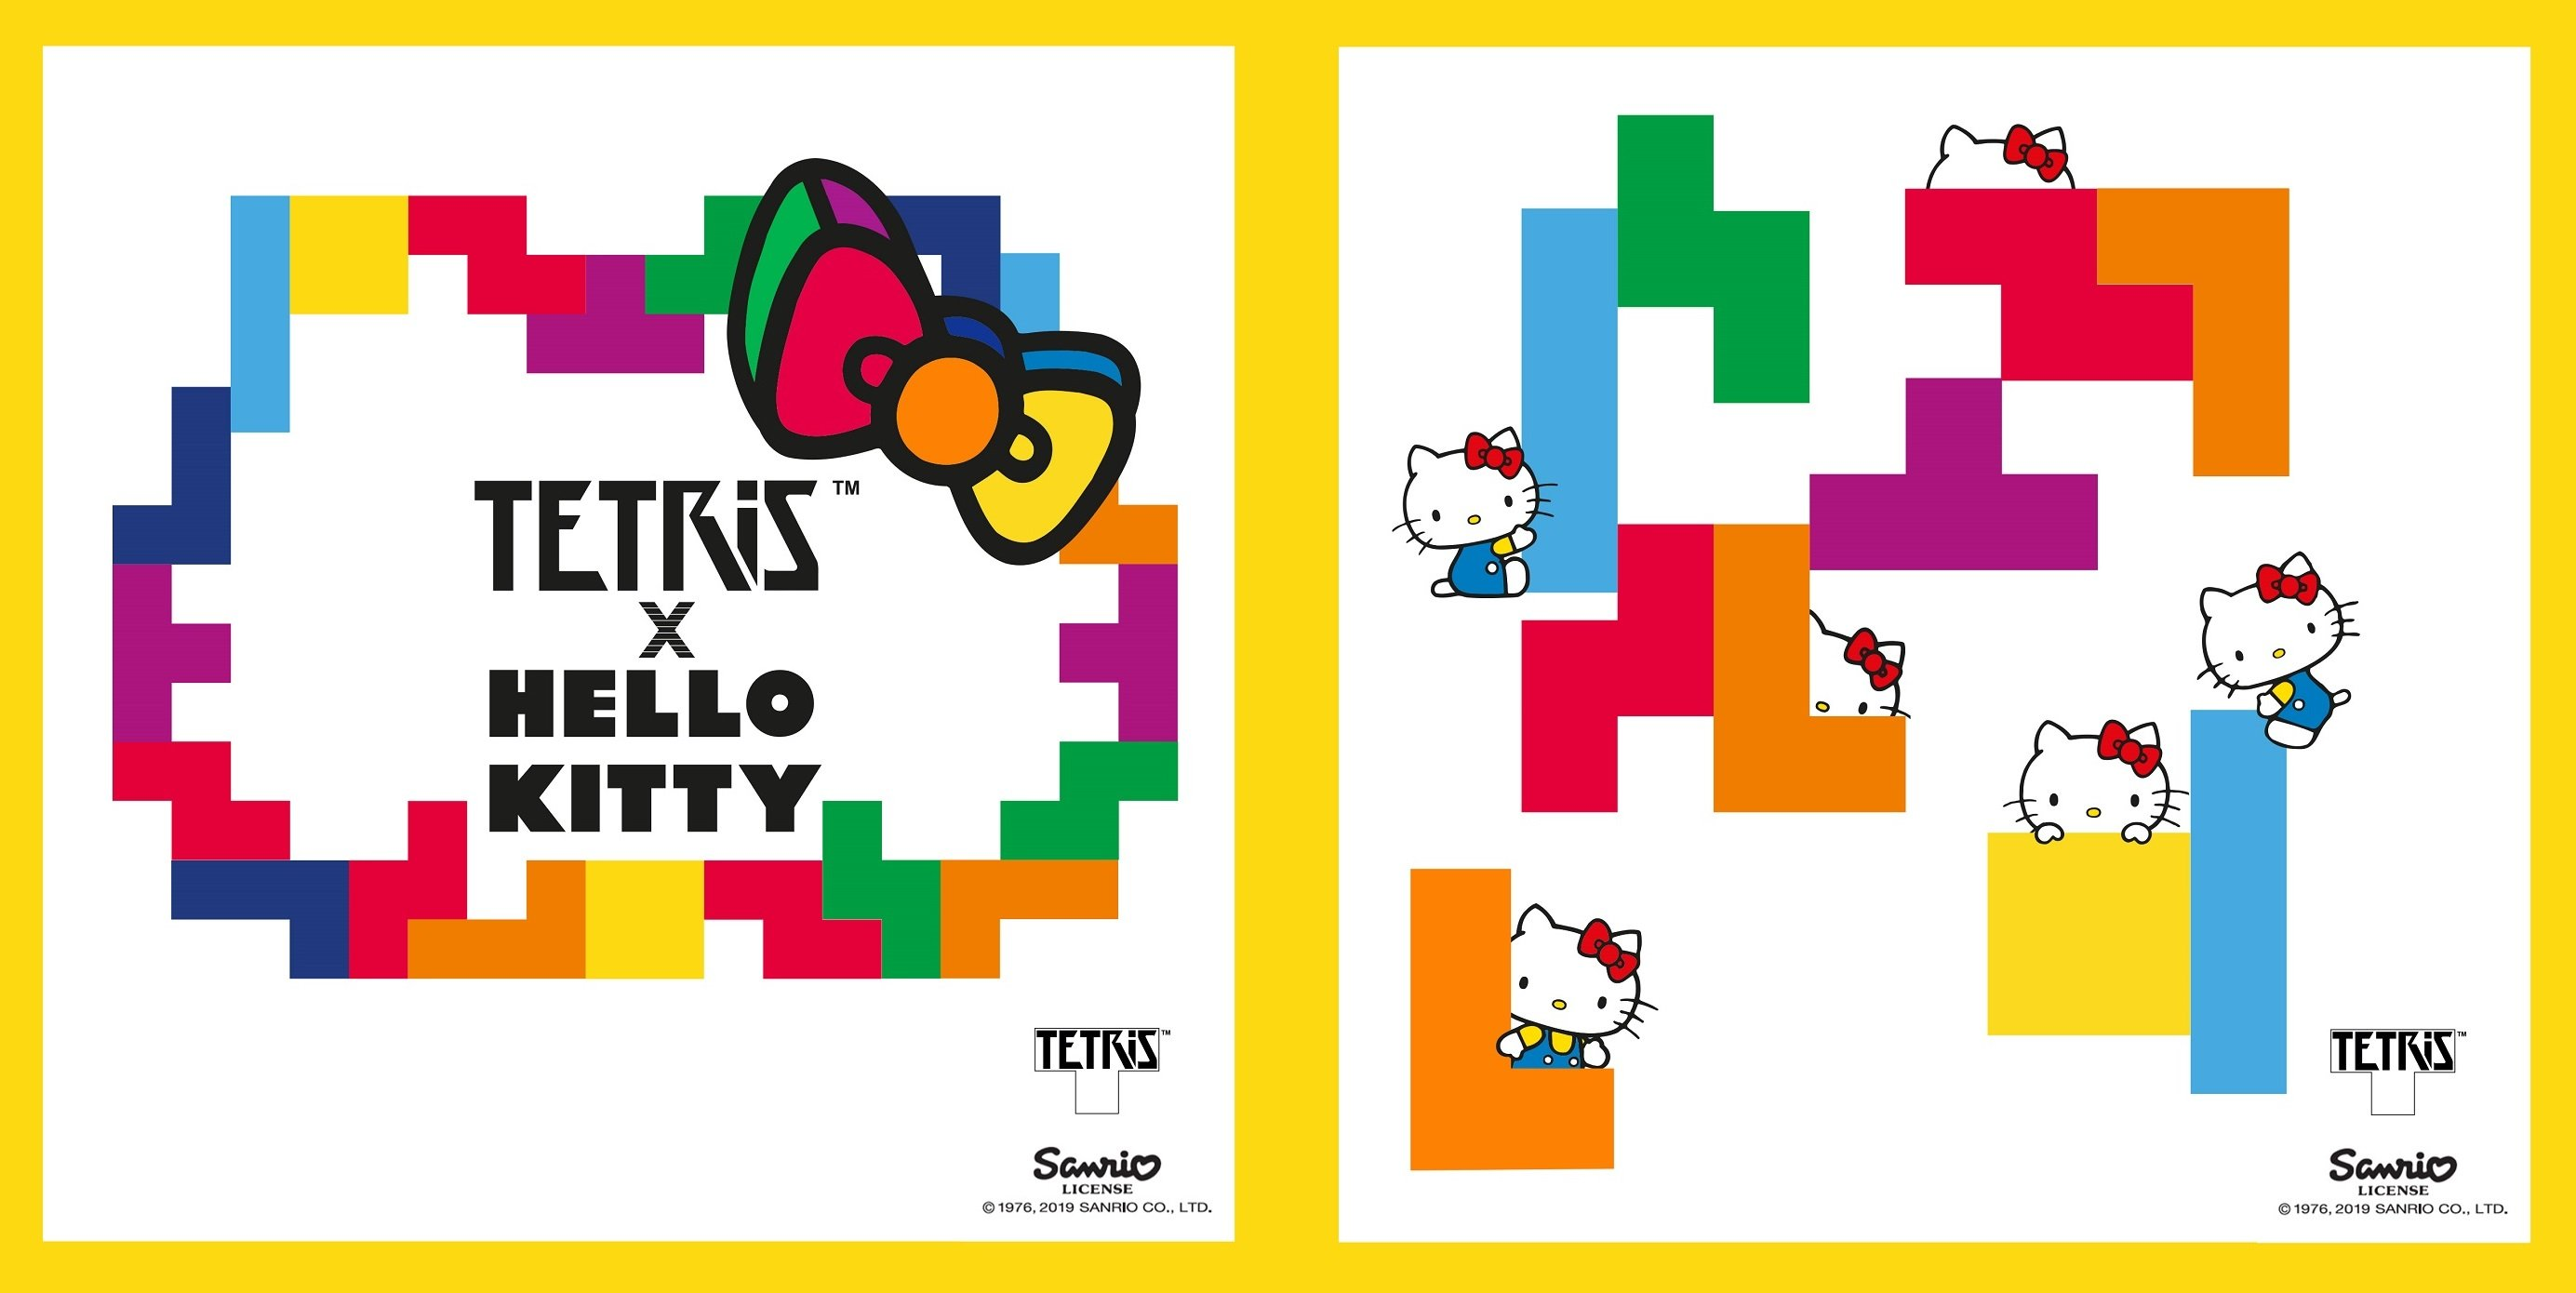 A new game that combines Tetris and Sanrio characters is set to release on June 3.